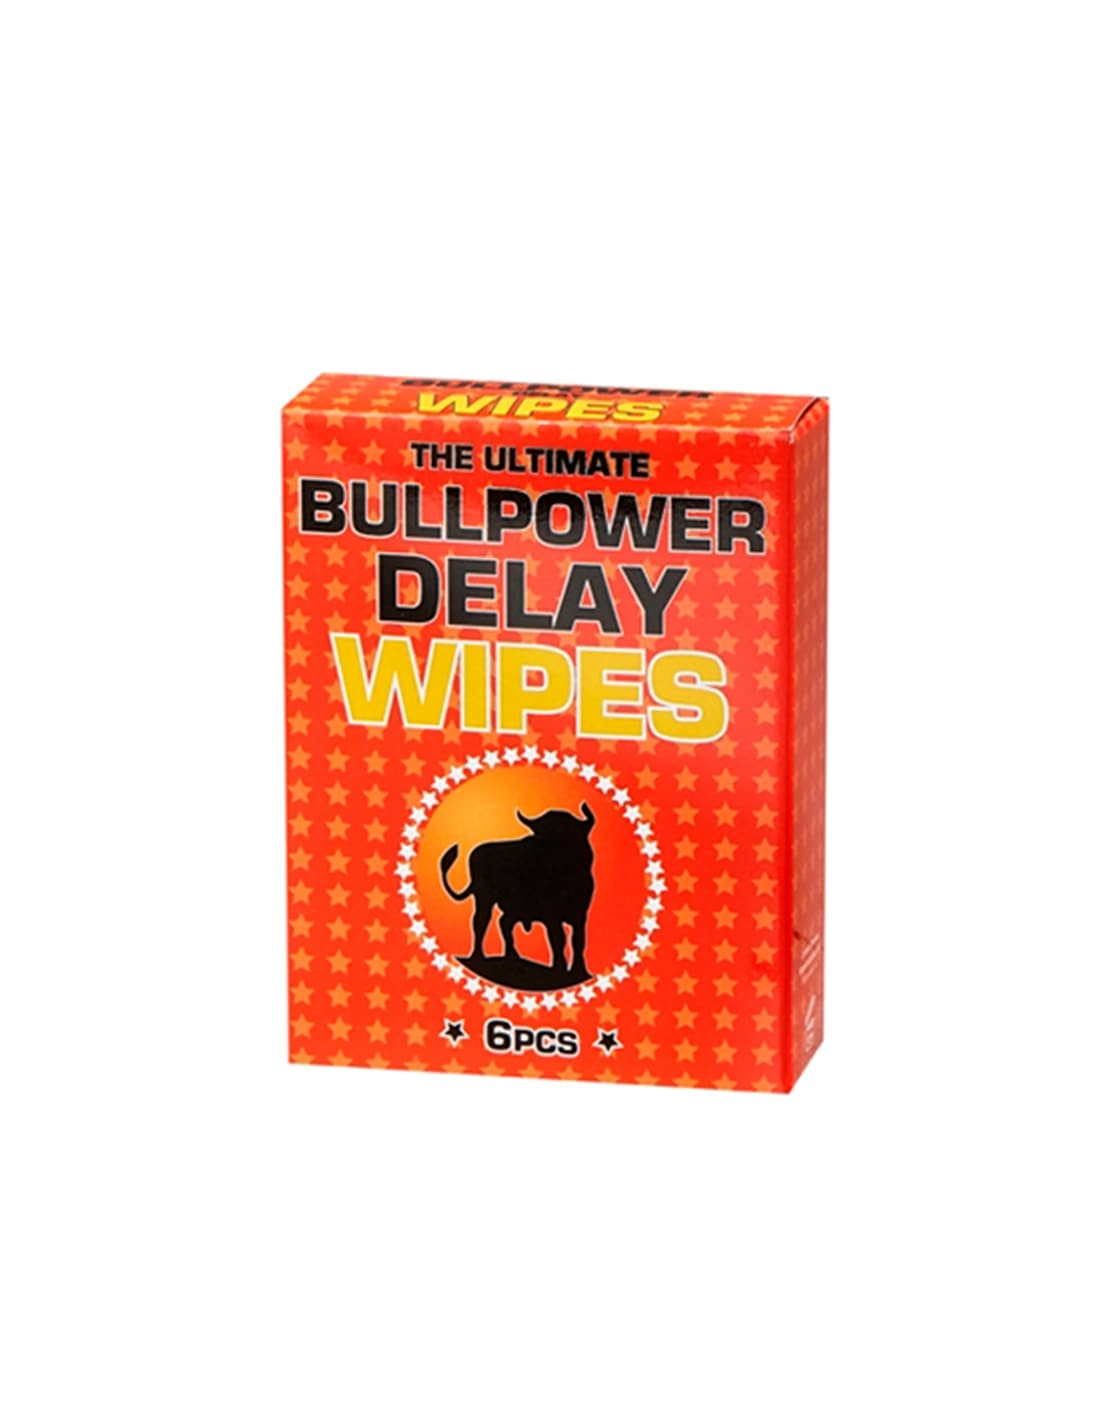 Caixa Com 6 Toalhitas Retardantes Bull Power Delay Wipes 2M - PR2010320149